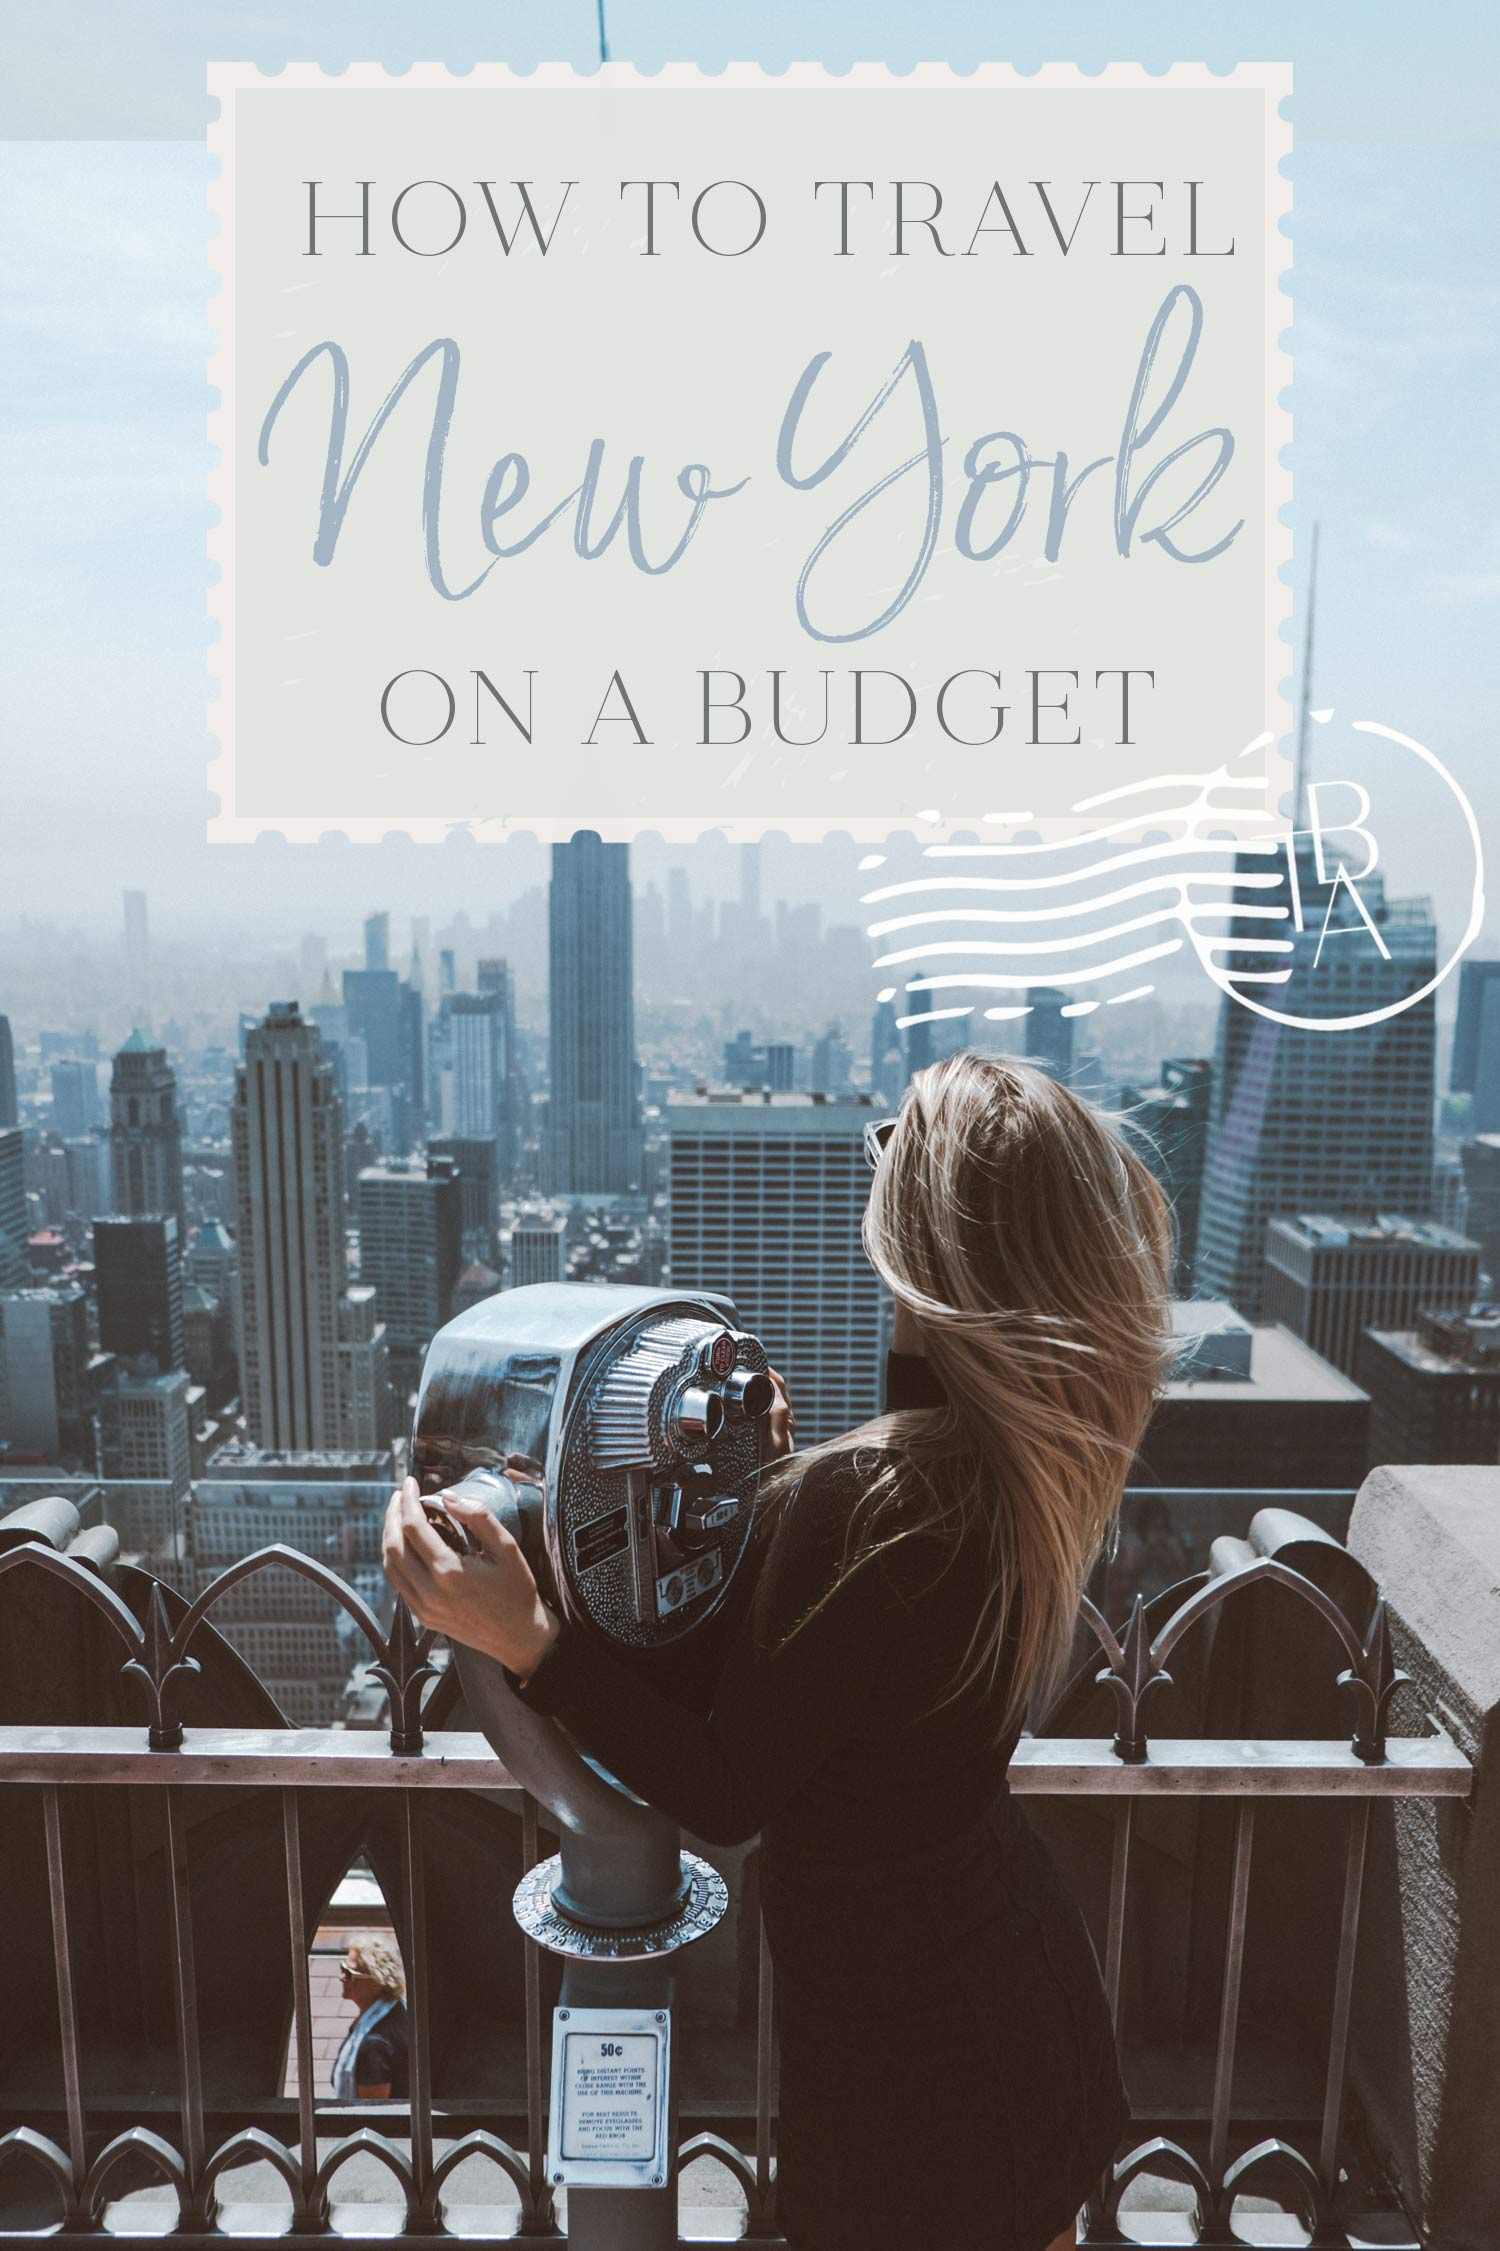 how to travel new york to a budget